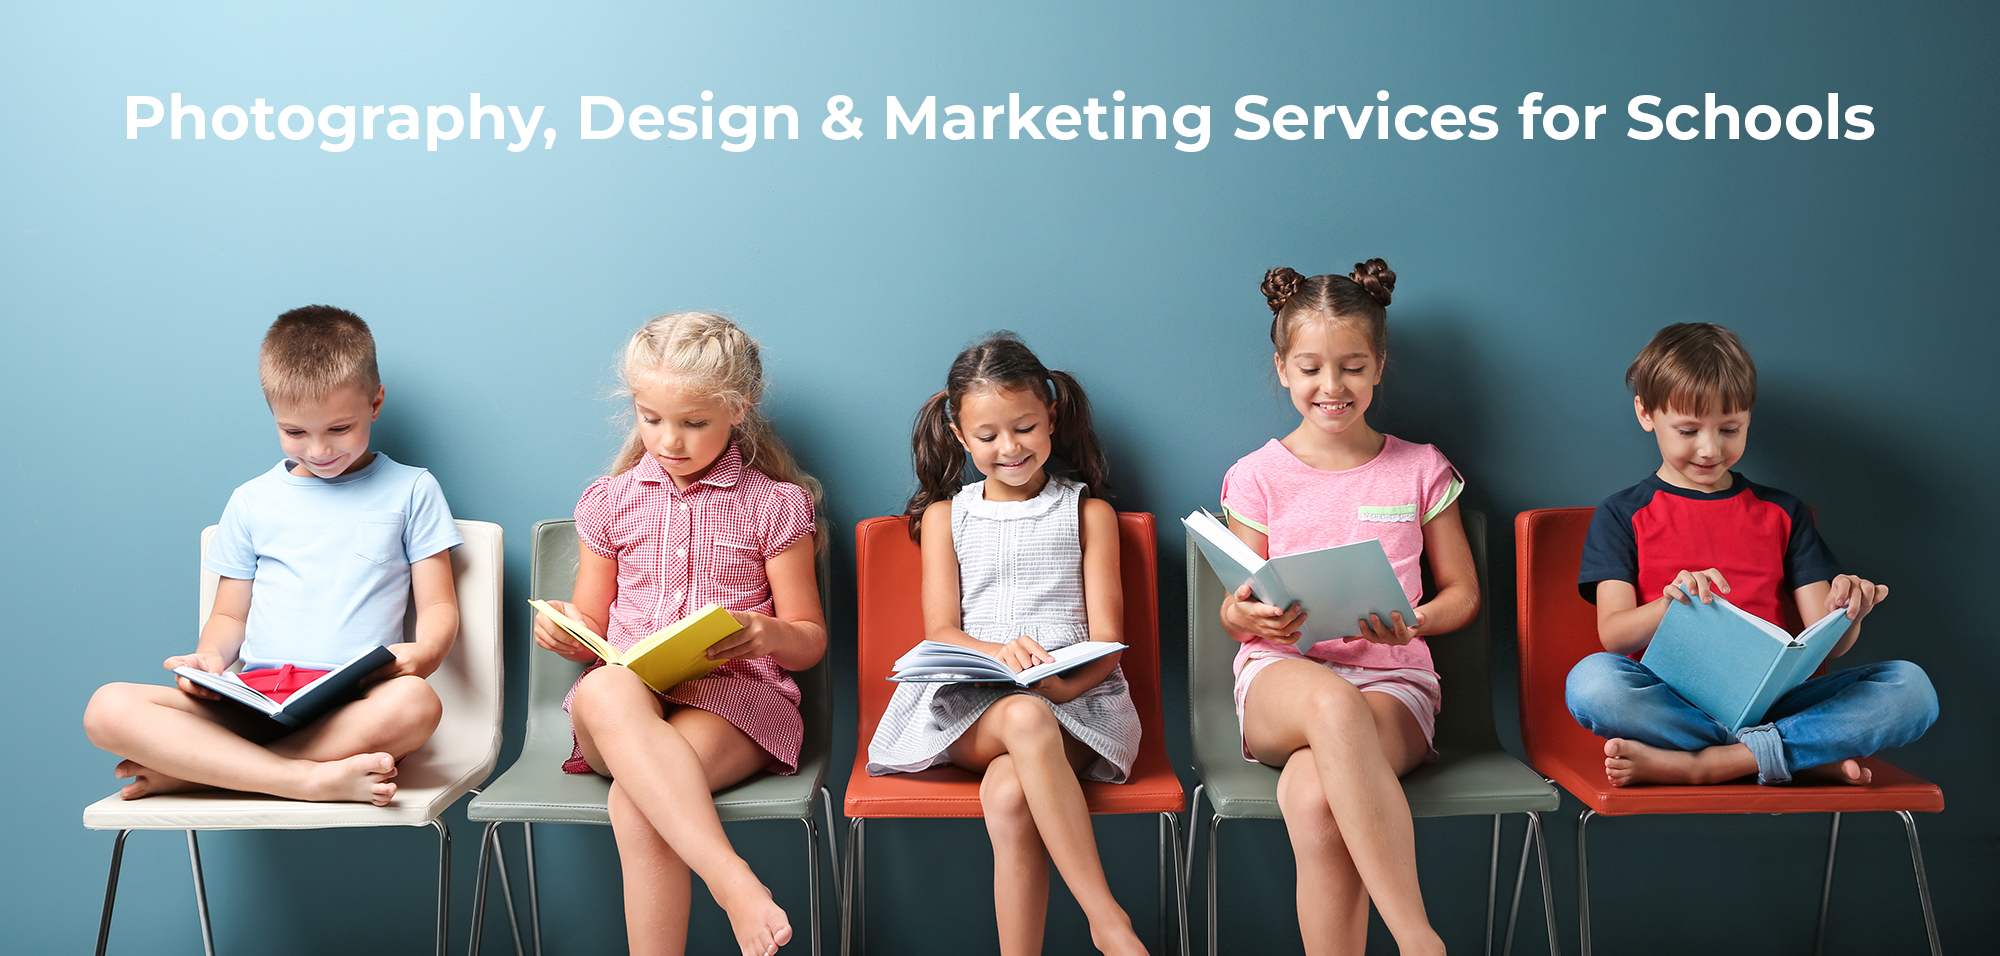 Photography, Design & Marketing Services for Schools